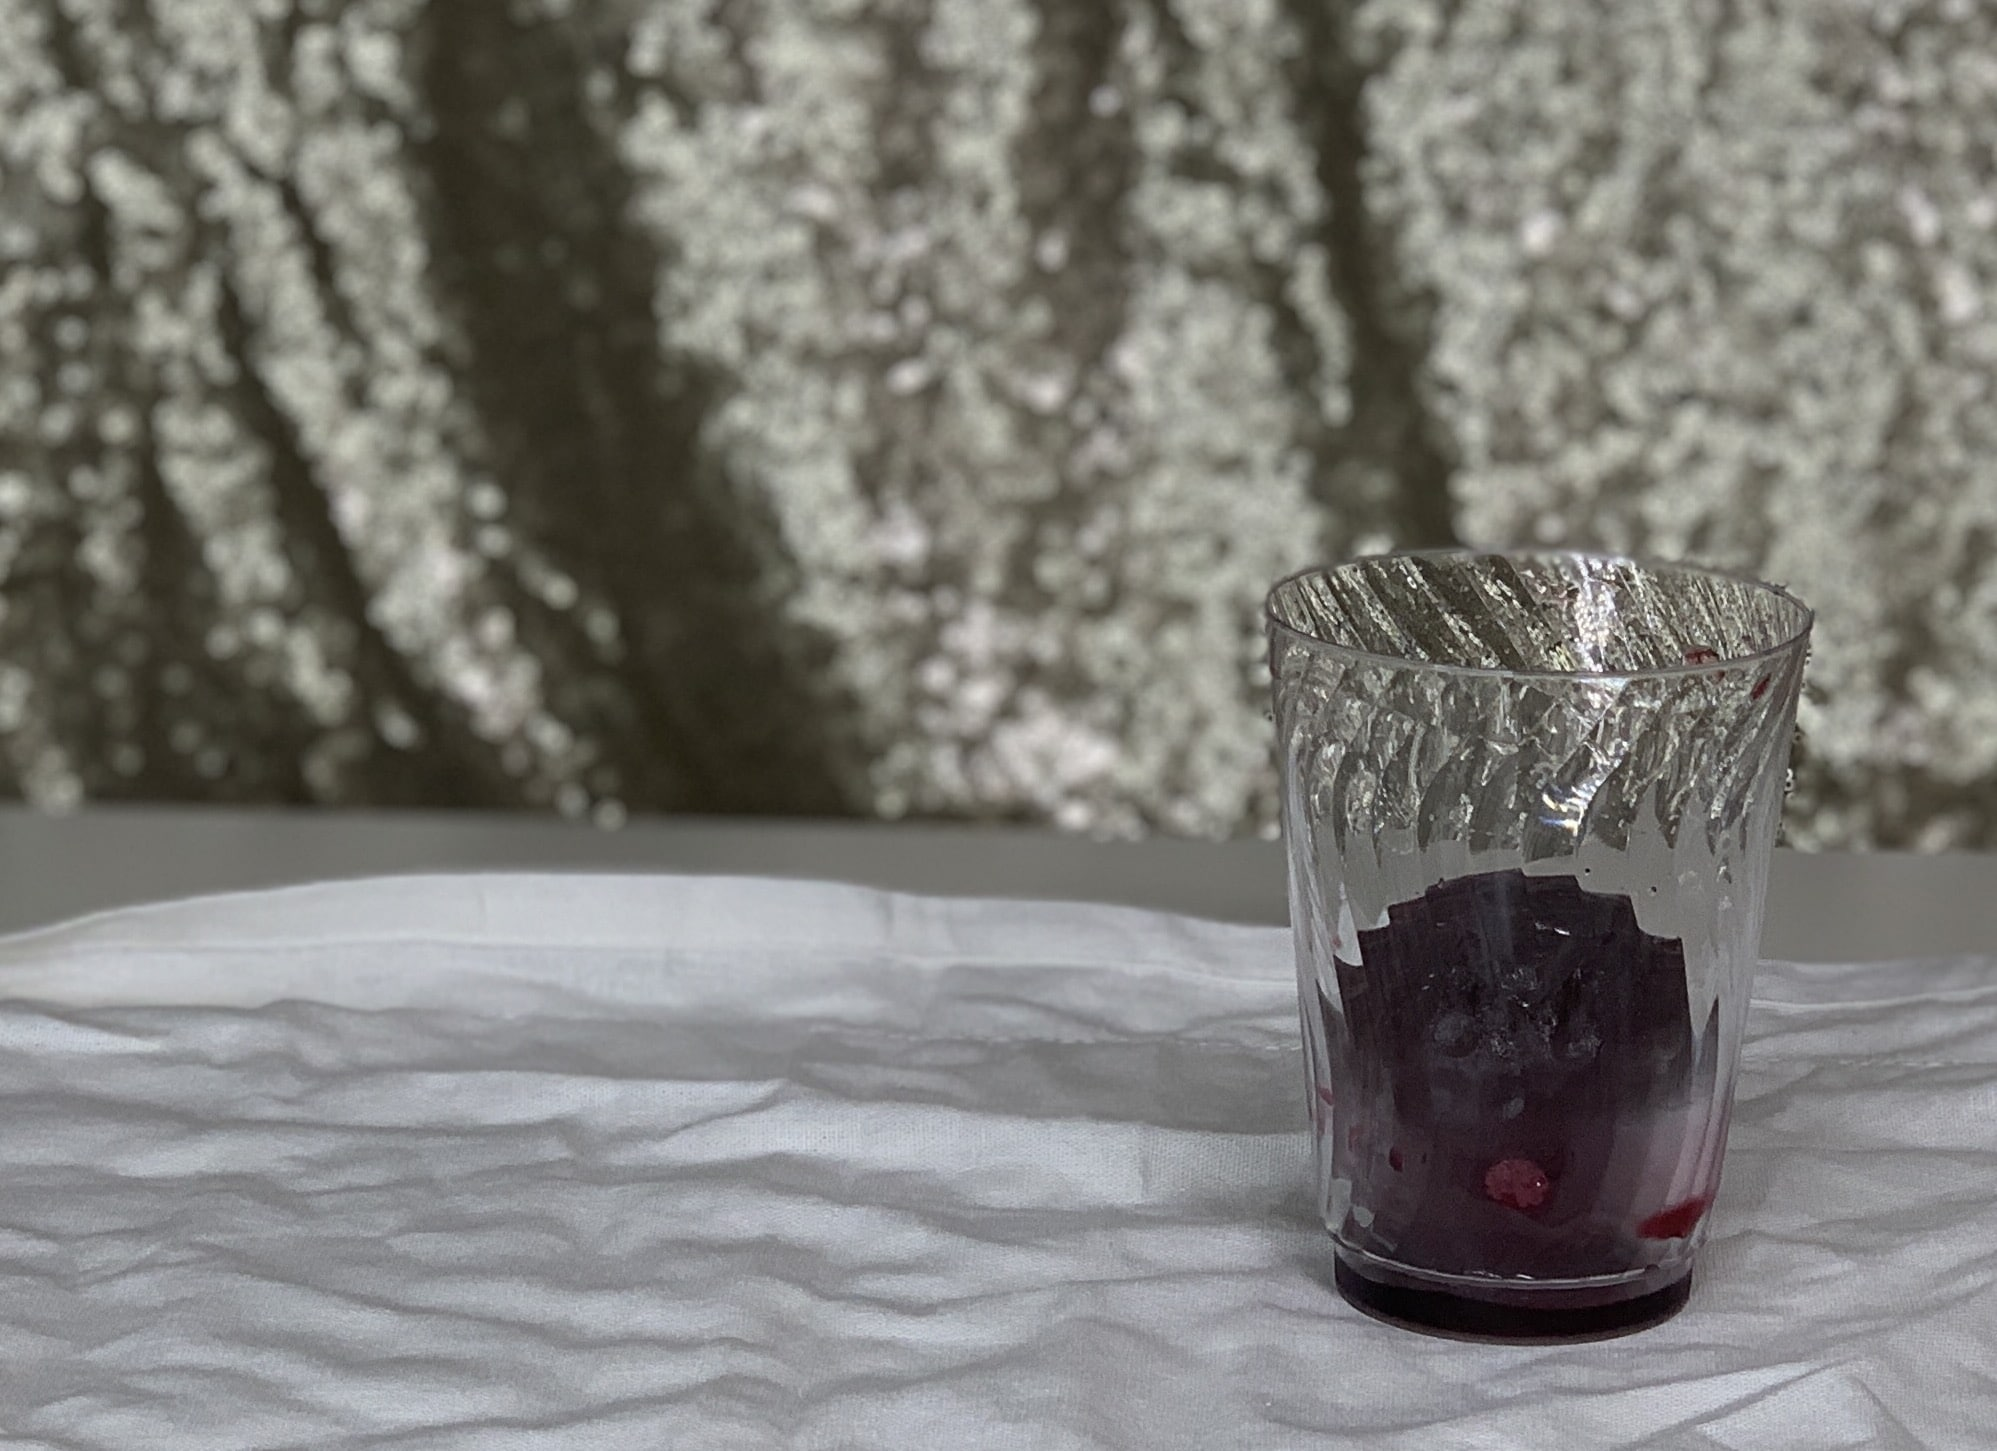 ice mold in glass